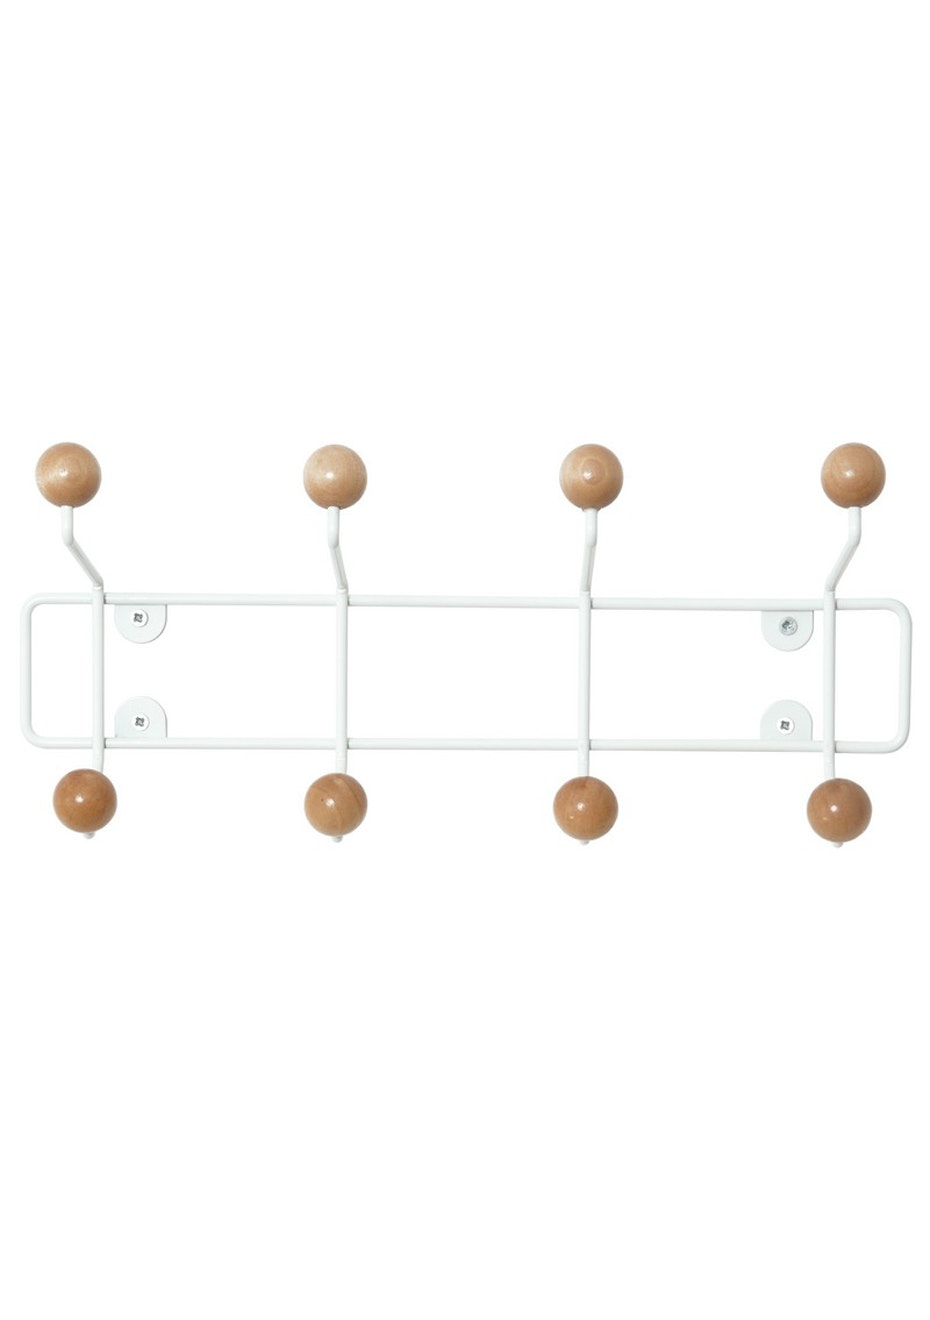 Pt Home - Coat Rack Saturnus - White/Natural